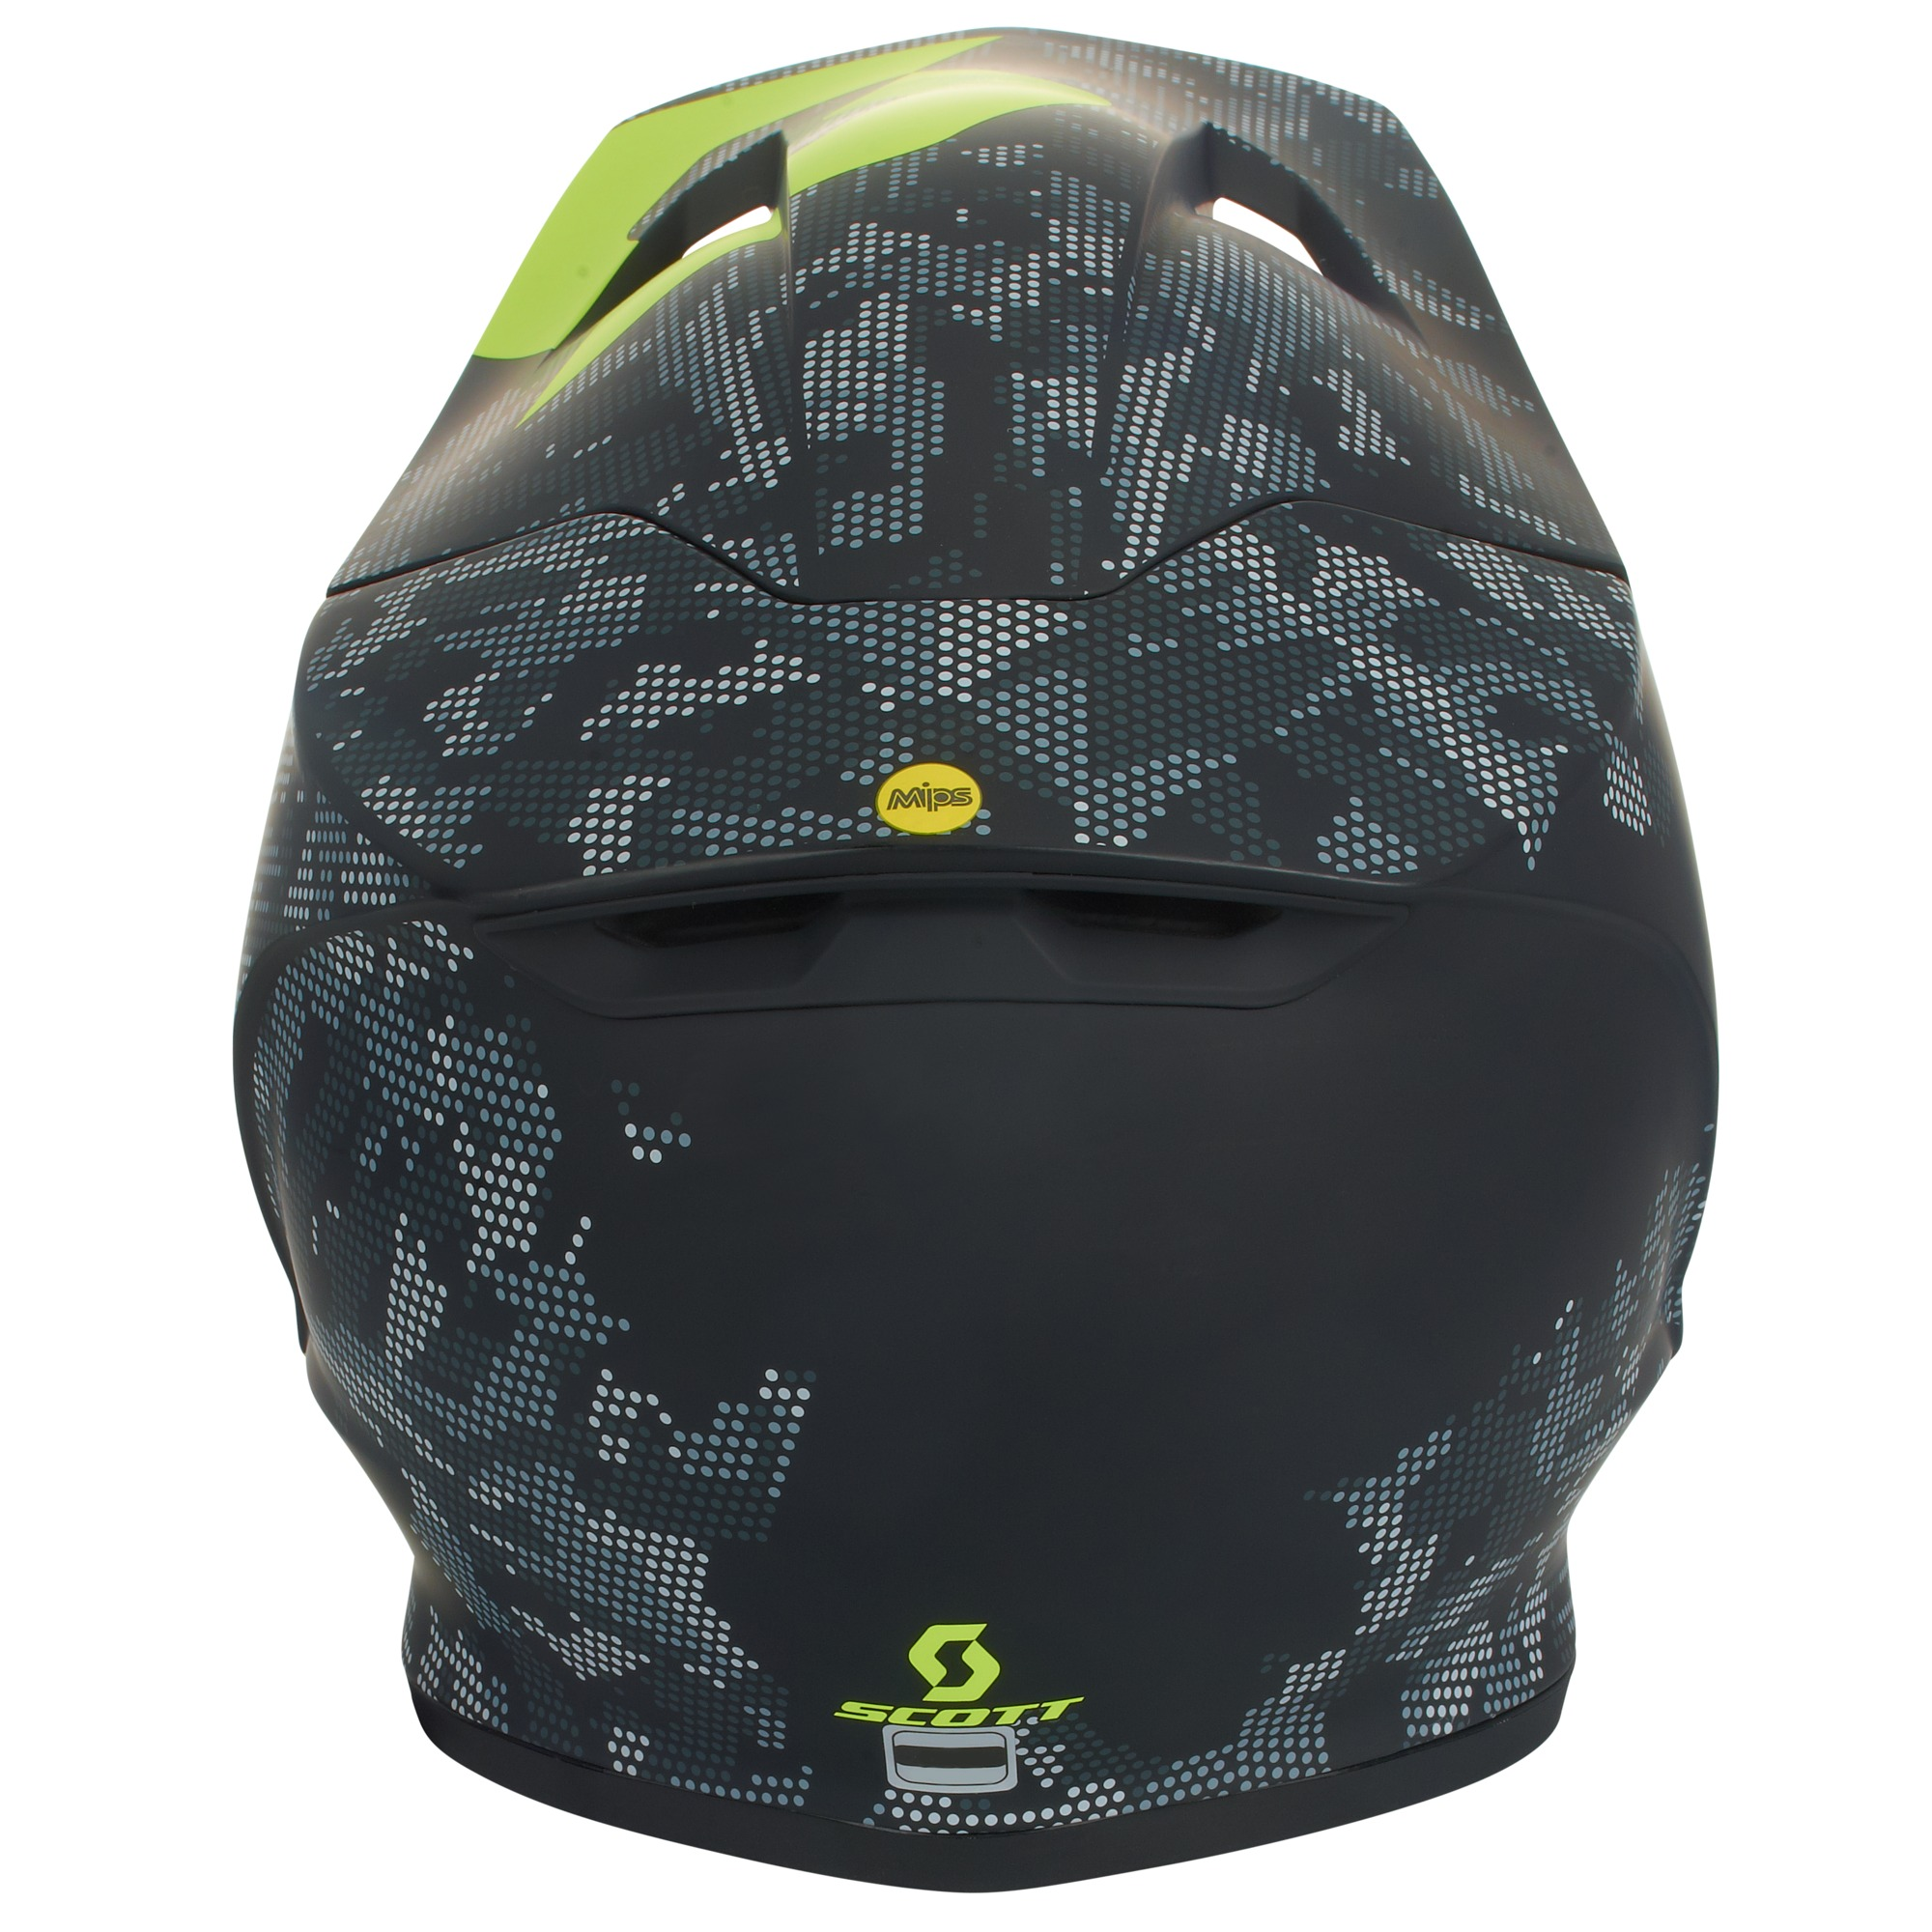 Casco SCOTT 550 Camo ECE